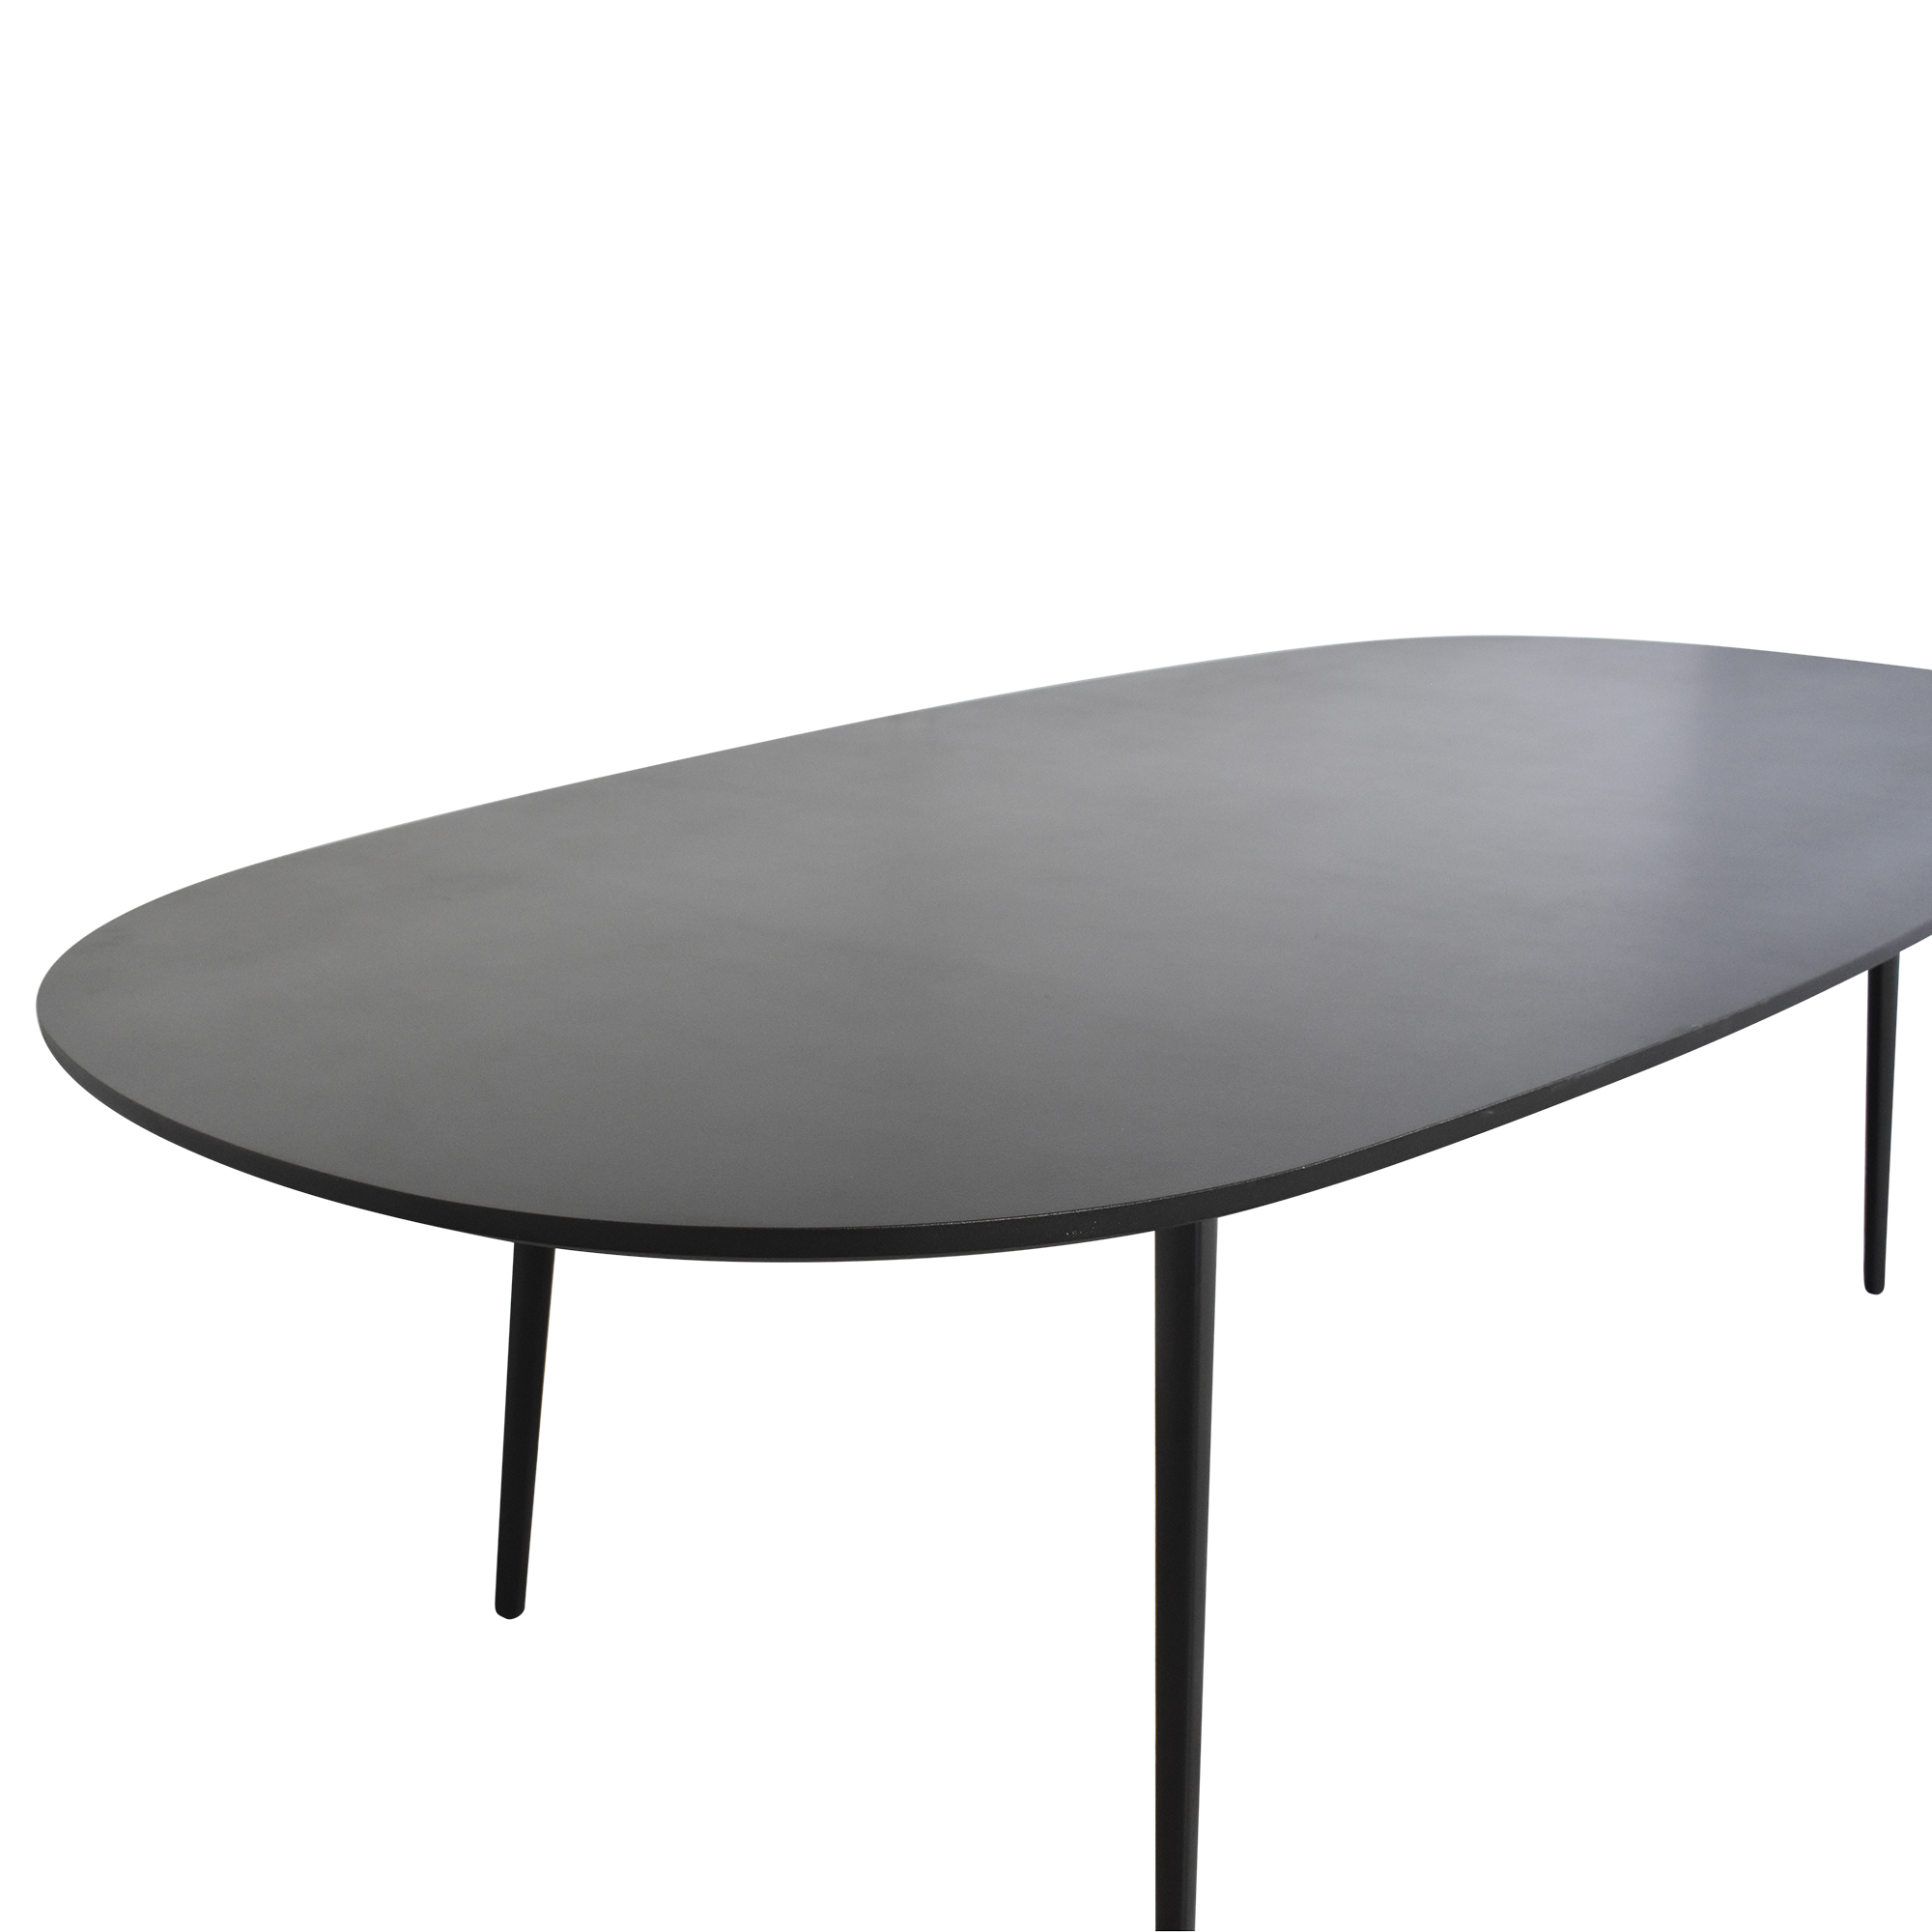 buy Leland International Fly Oval Table Leland International Dinner Tables